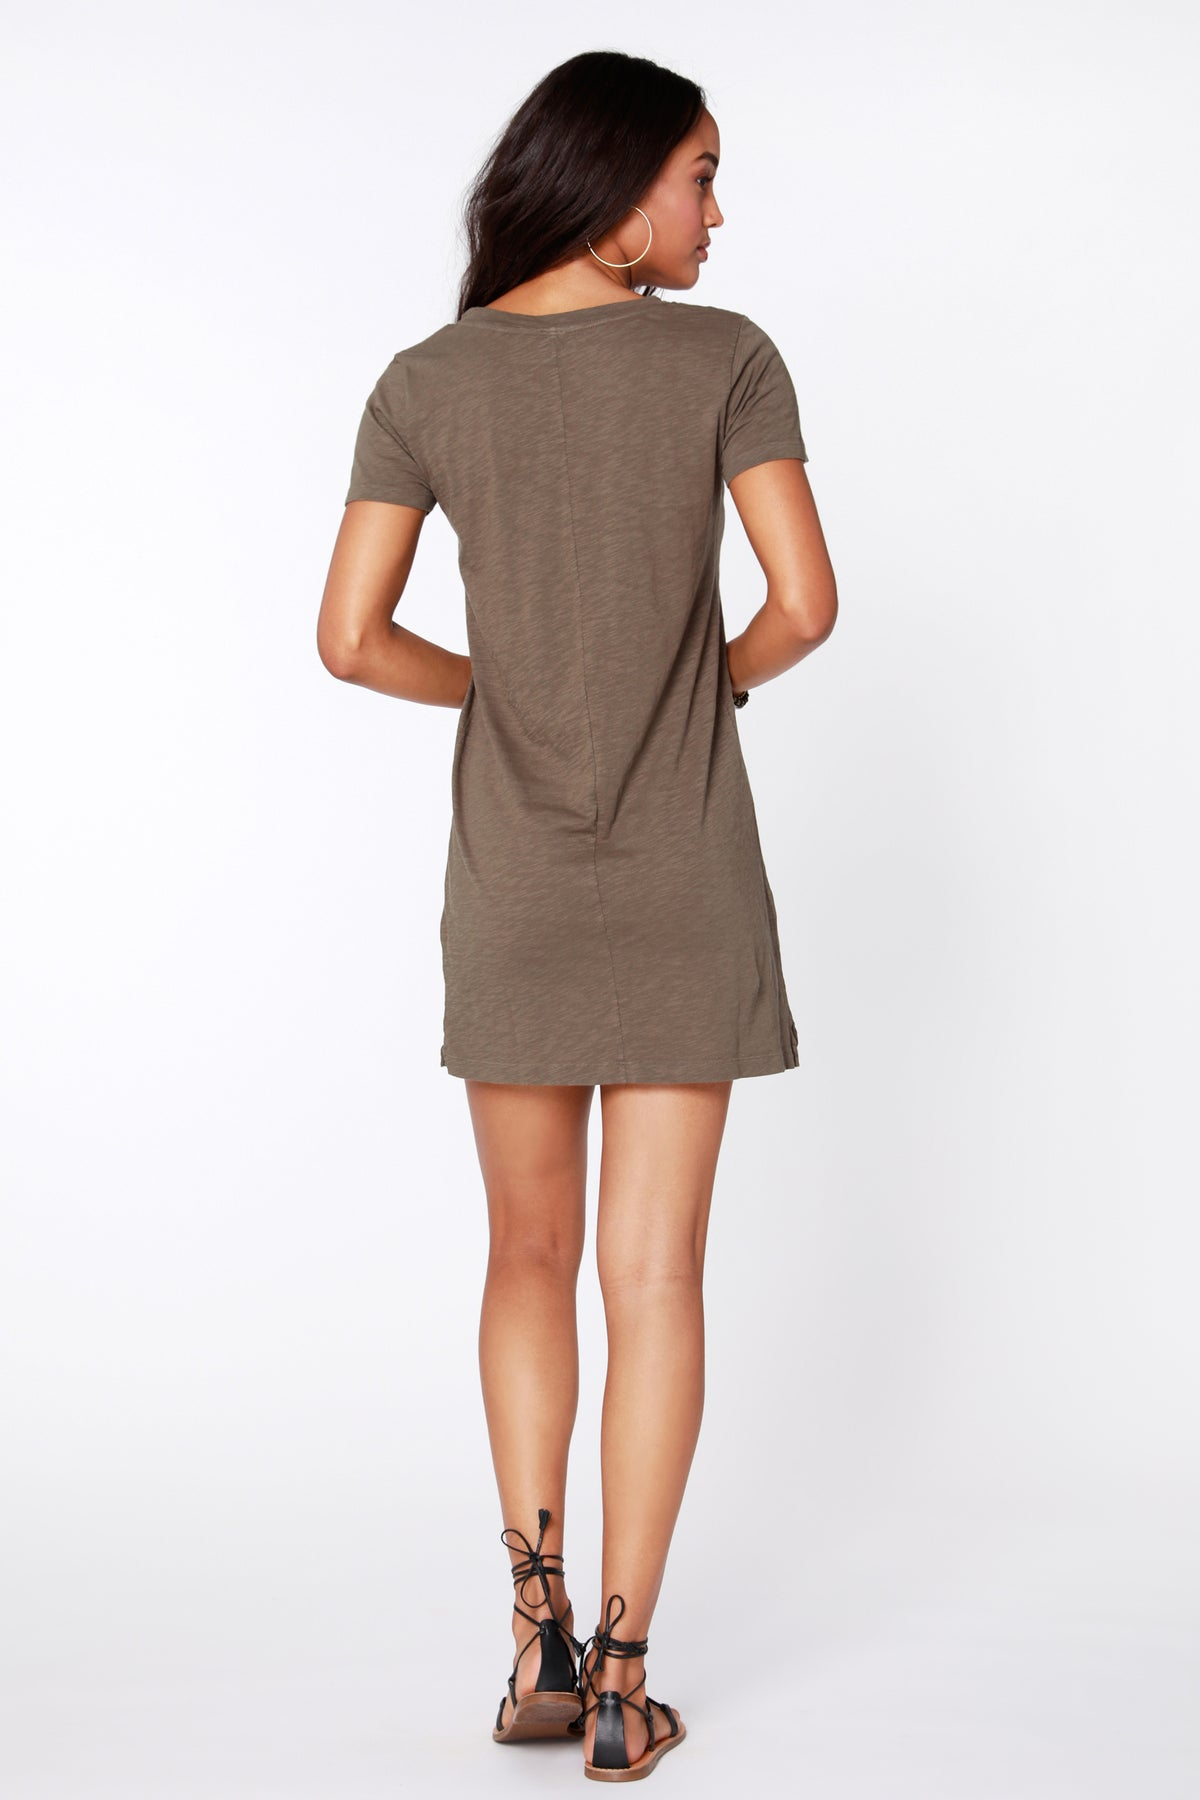 T-Shirt Dress - bobi Los Angeles